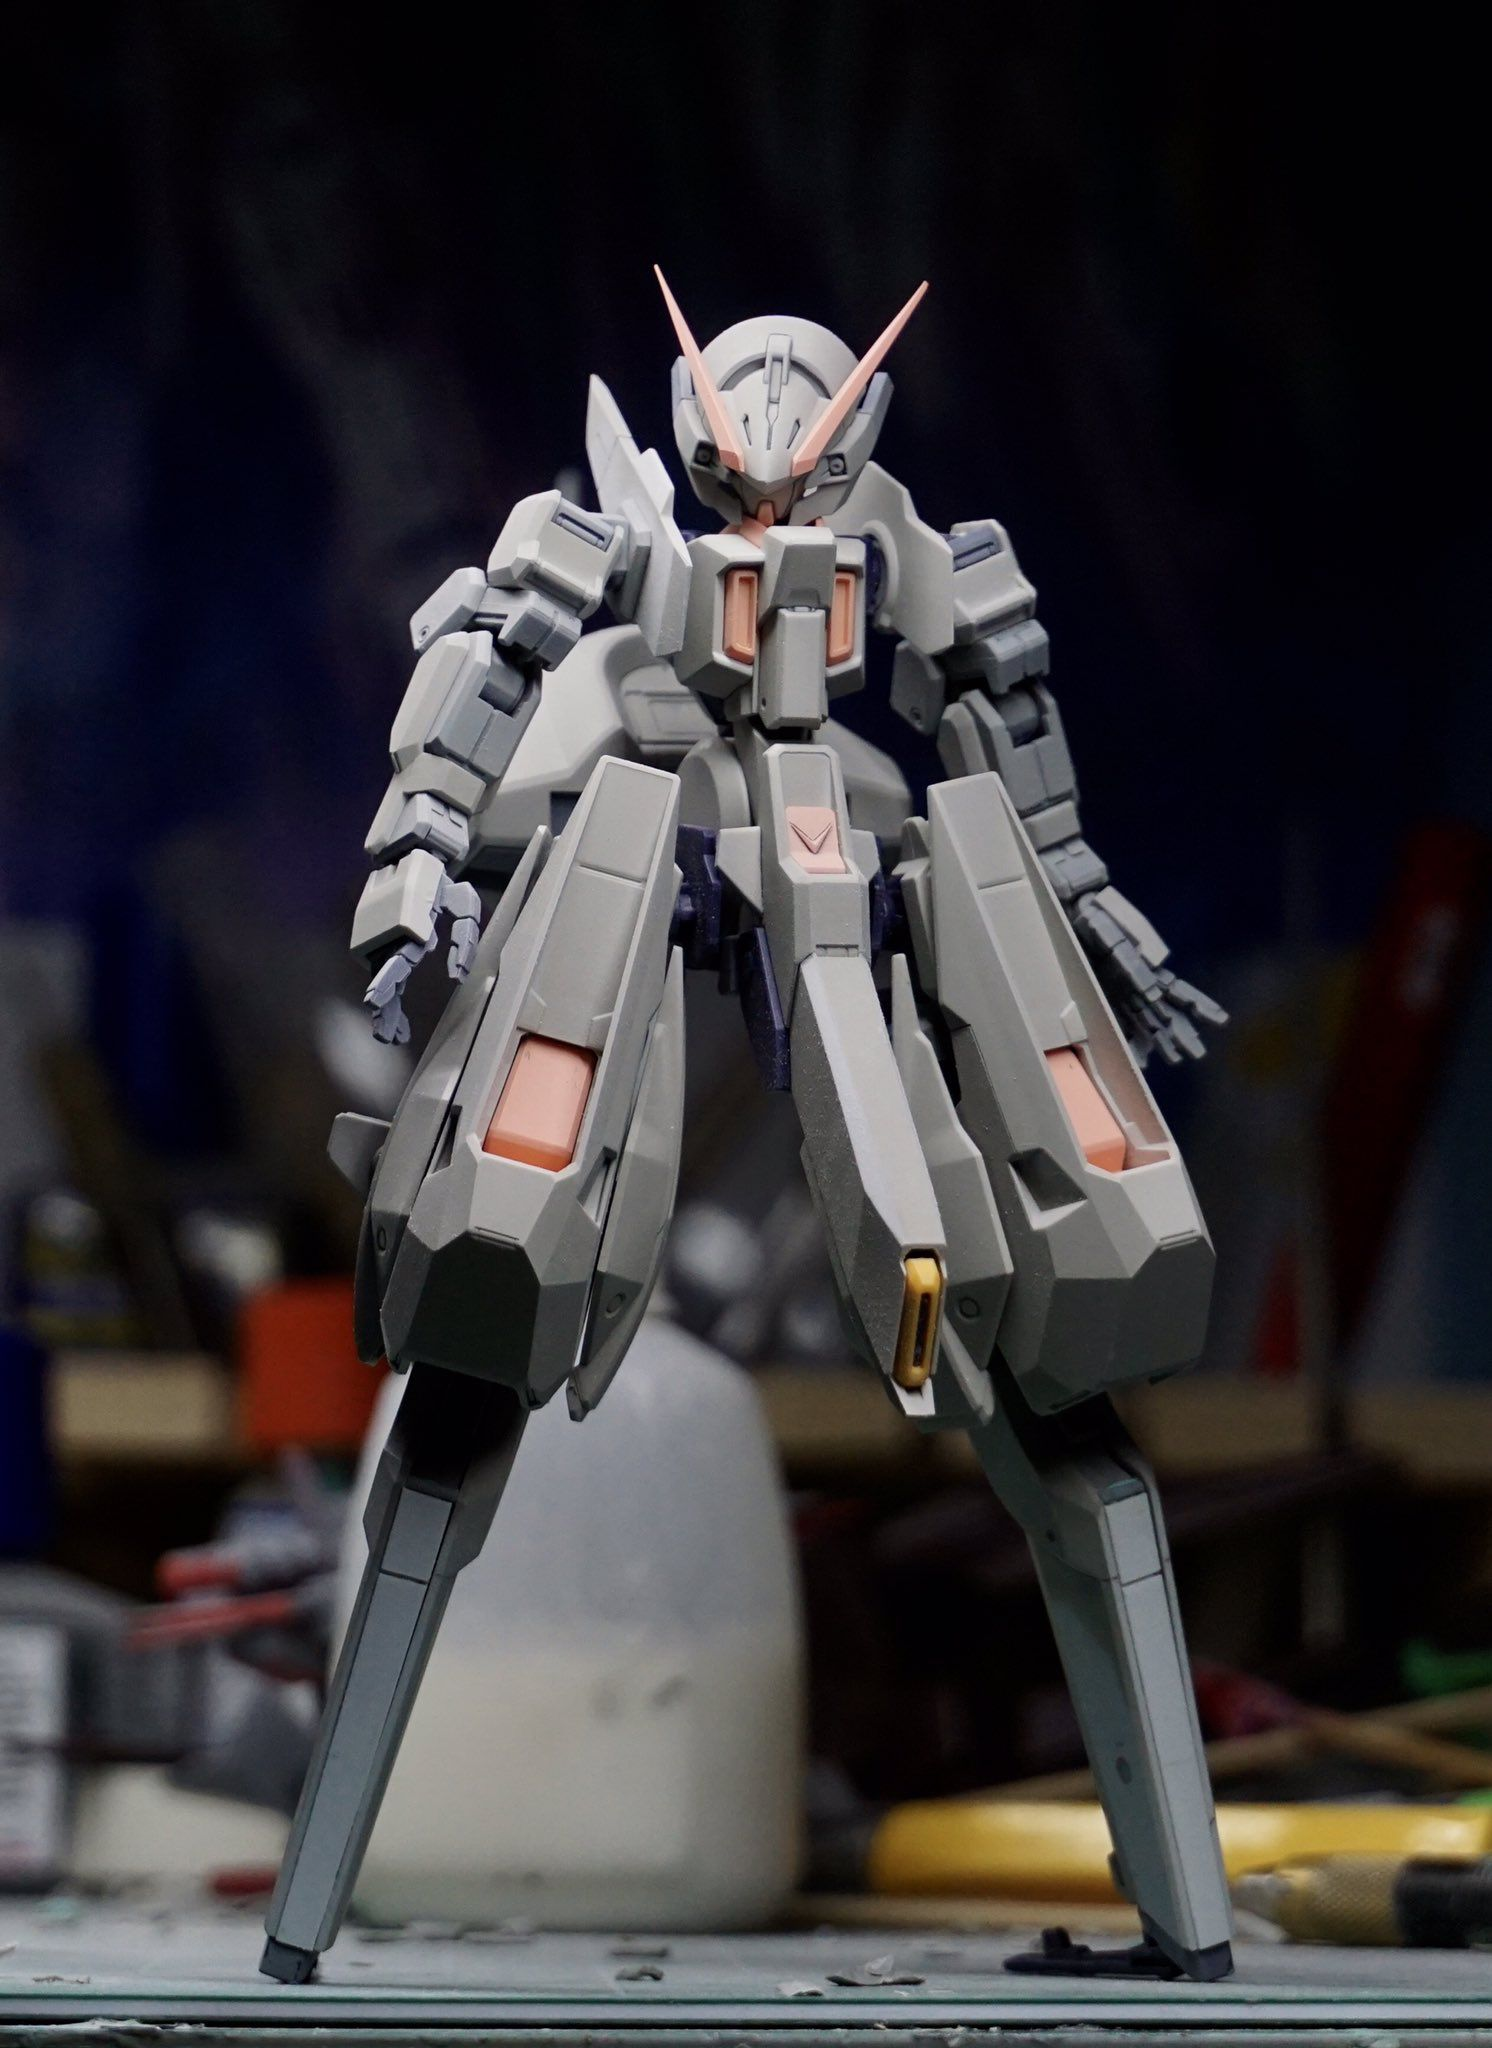 Pin by Gunpla Jagat Raya on Gunpla Custom Build Ideas